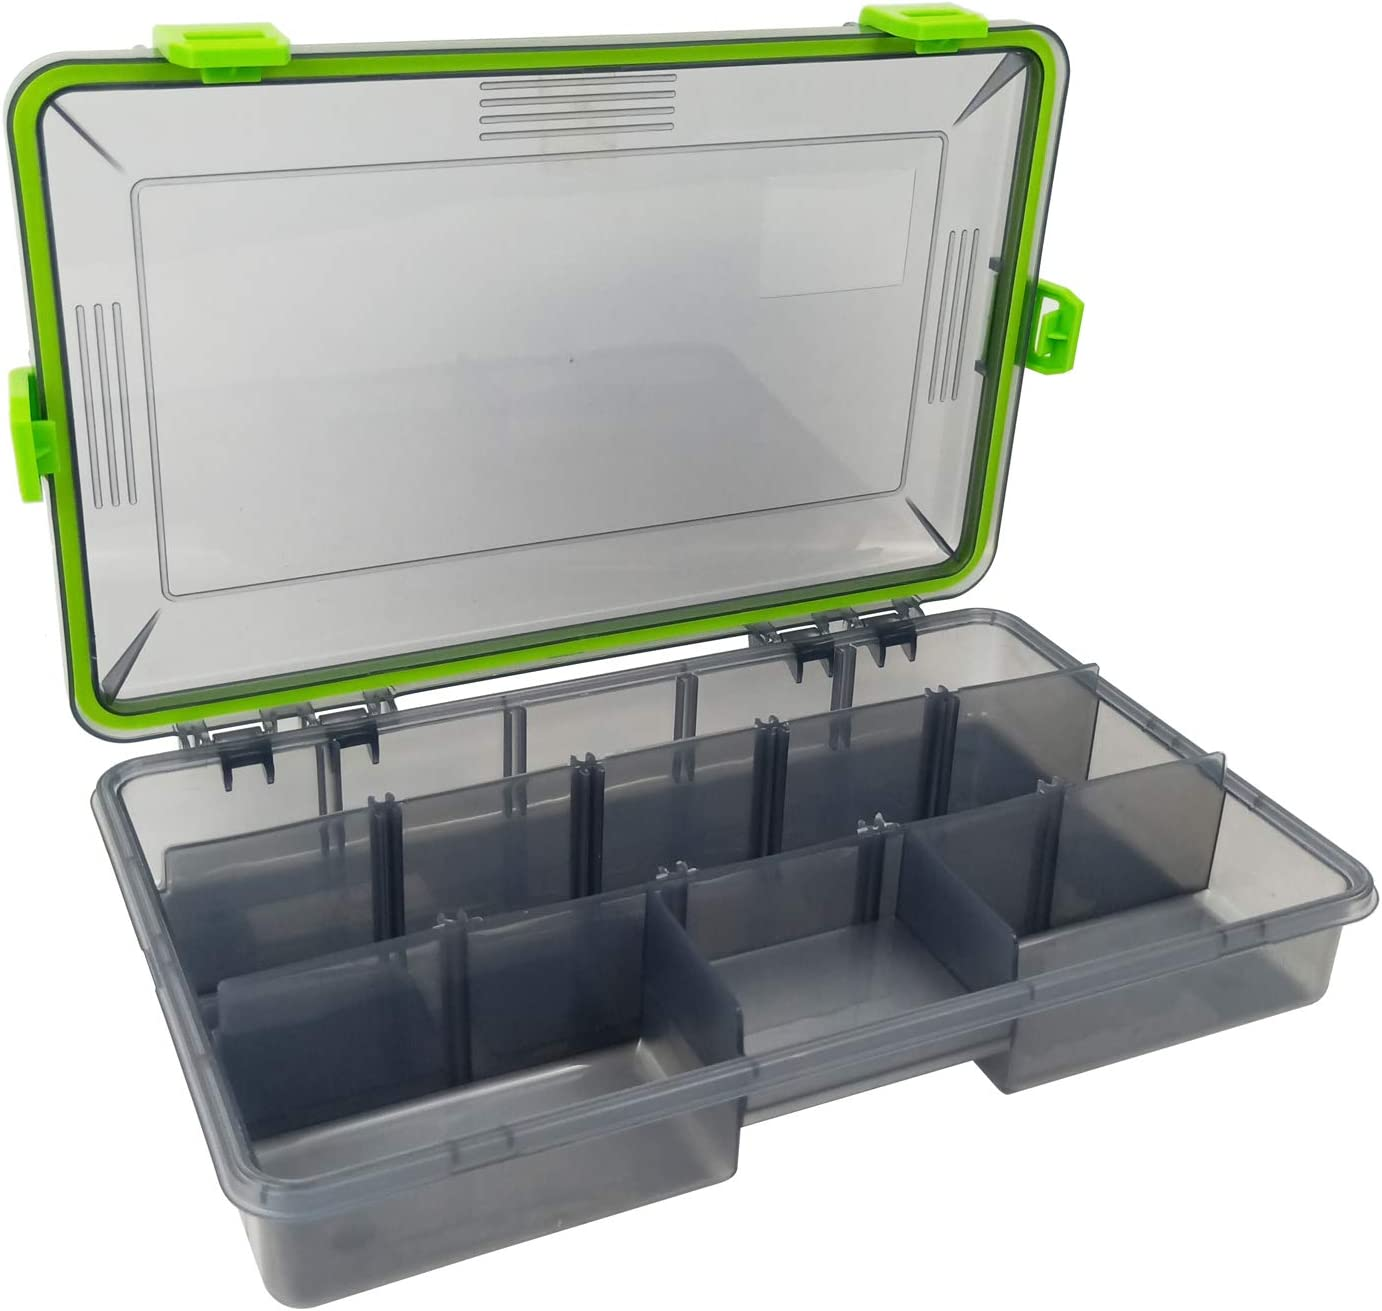 Aventik Transparent Plastic Waterproof Fly Box Storage with Adjustable Dividers